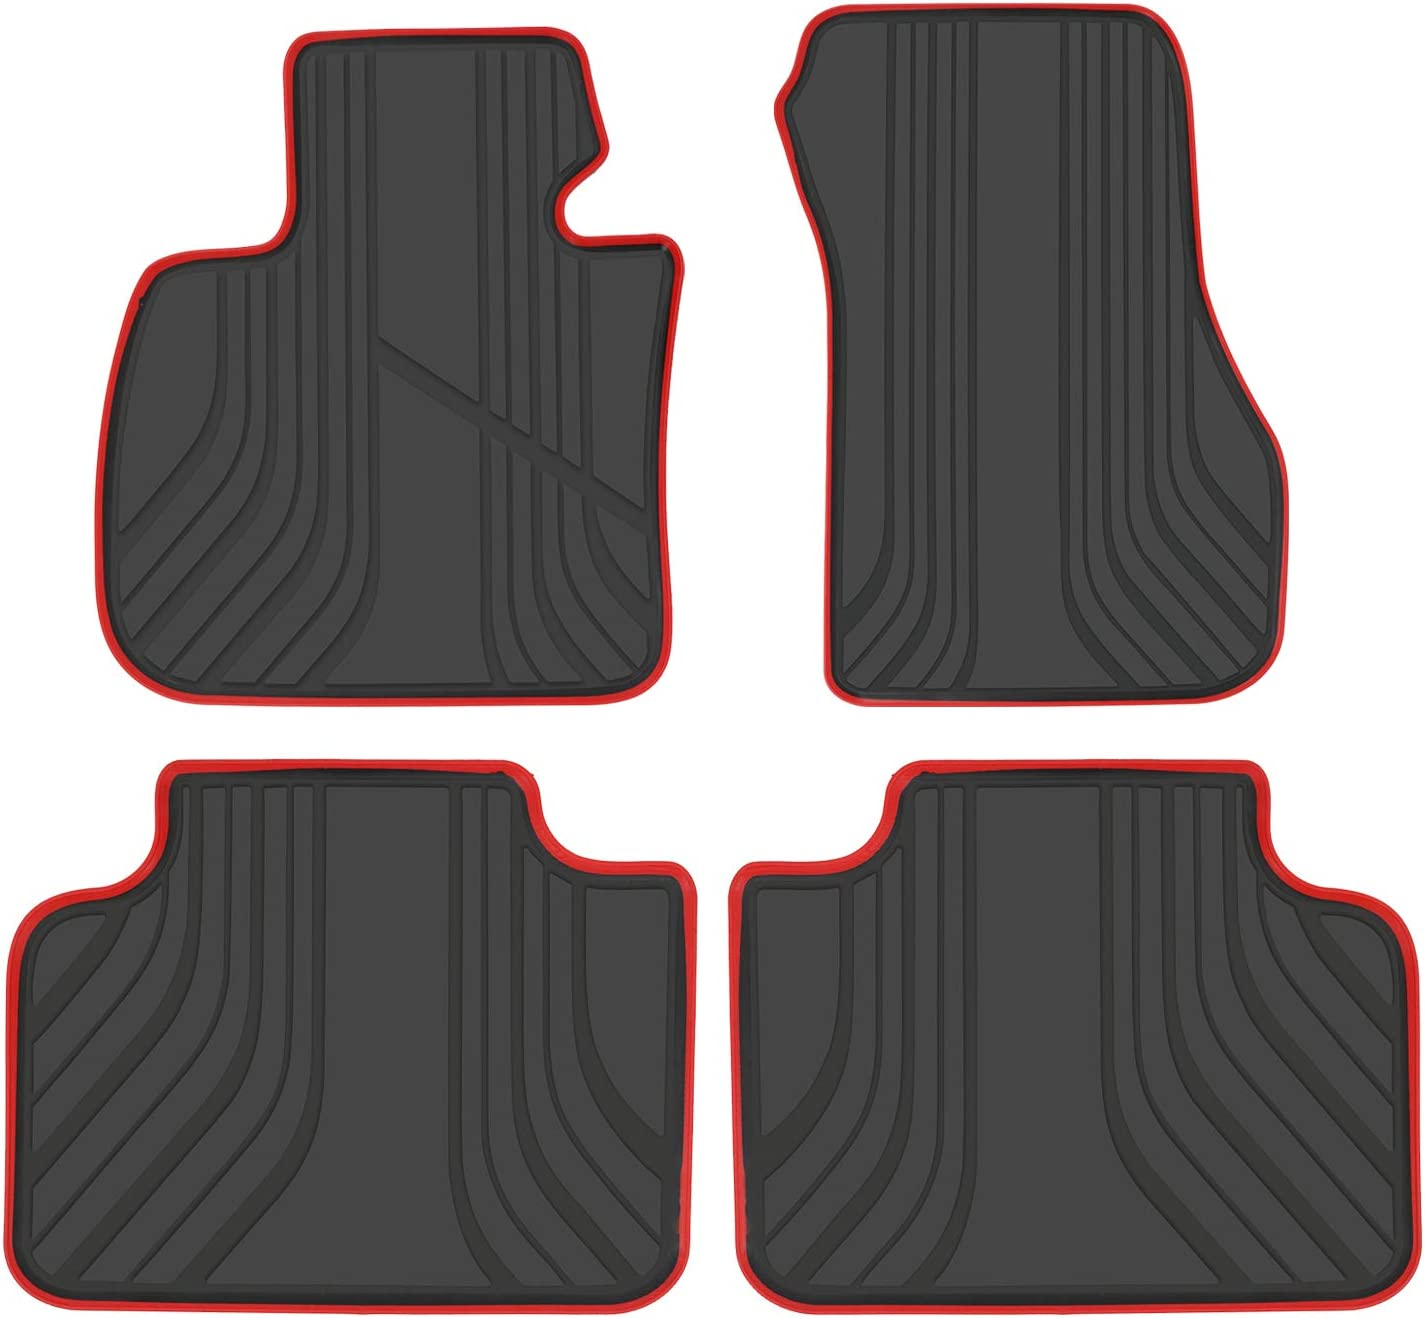 2015-2019 2AT F48 F45 F39 Custom Fit Full Black Rubber All Weather Heavy Duty /& Odorless 2018-2019 X2 San Auto Car Floor Mat for BMW X1 2015-2019